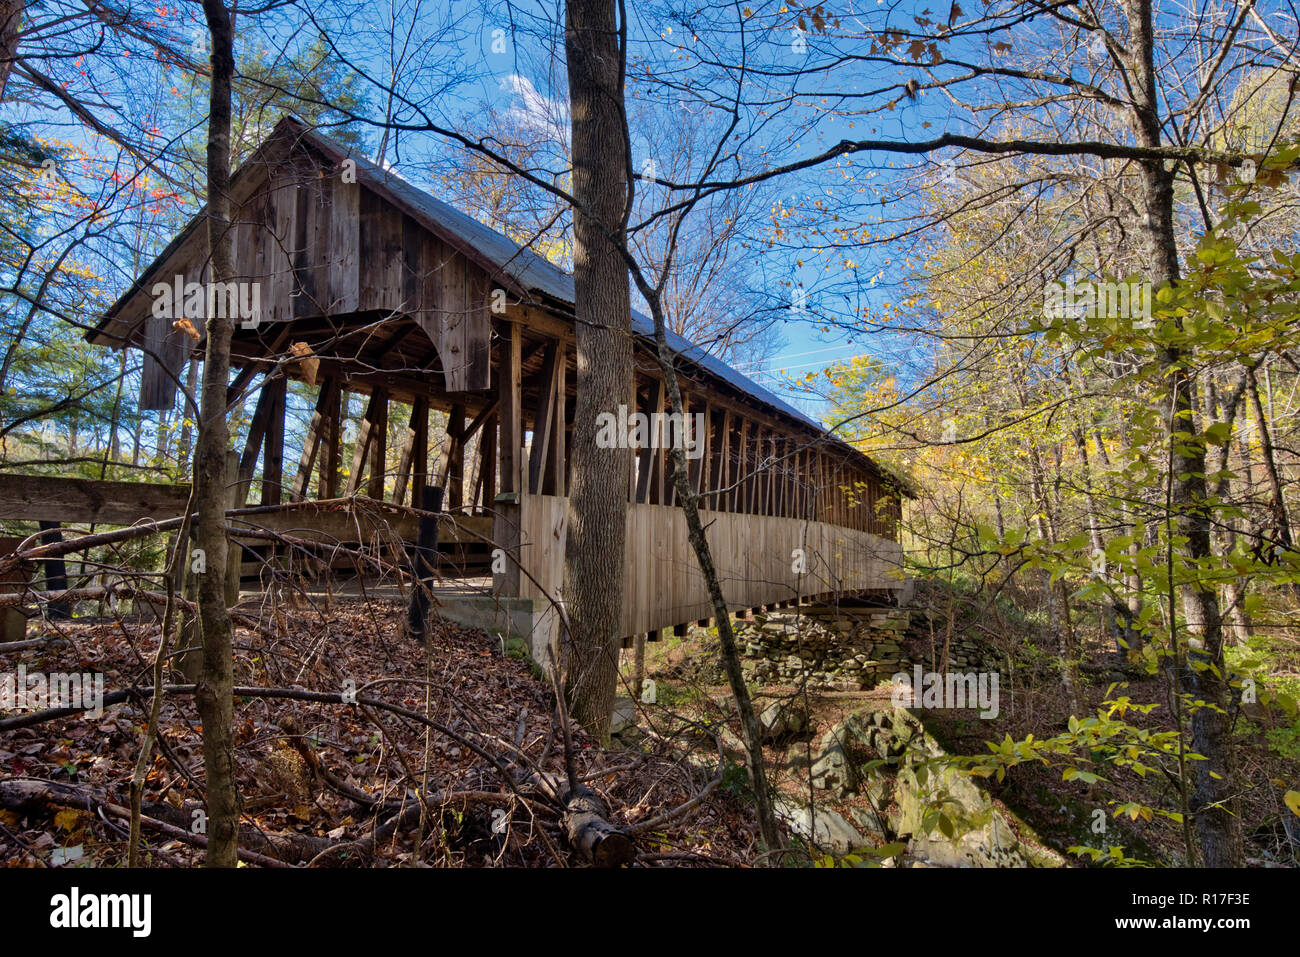 A covered bridge has been abandoned and sits in need of repair off the roadway in the countryside as it slowly falls apart over a ravine. - Stock Image